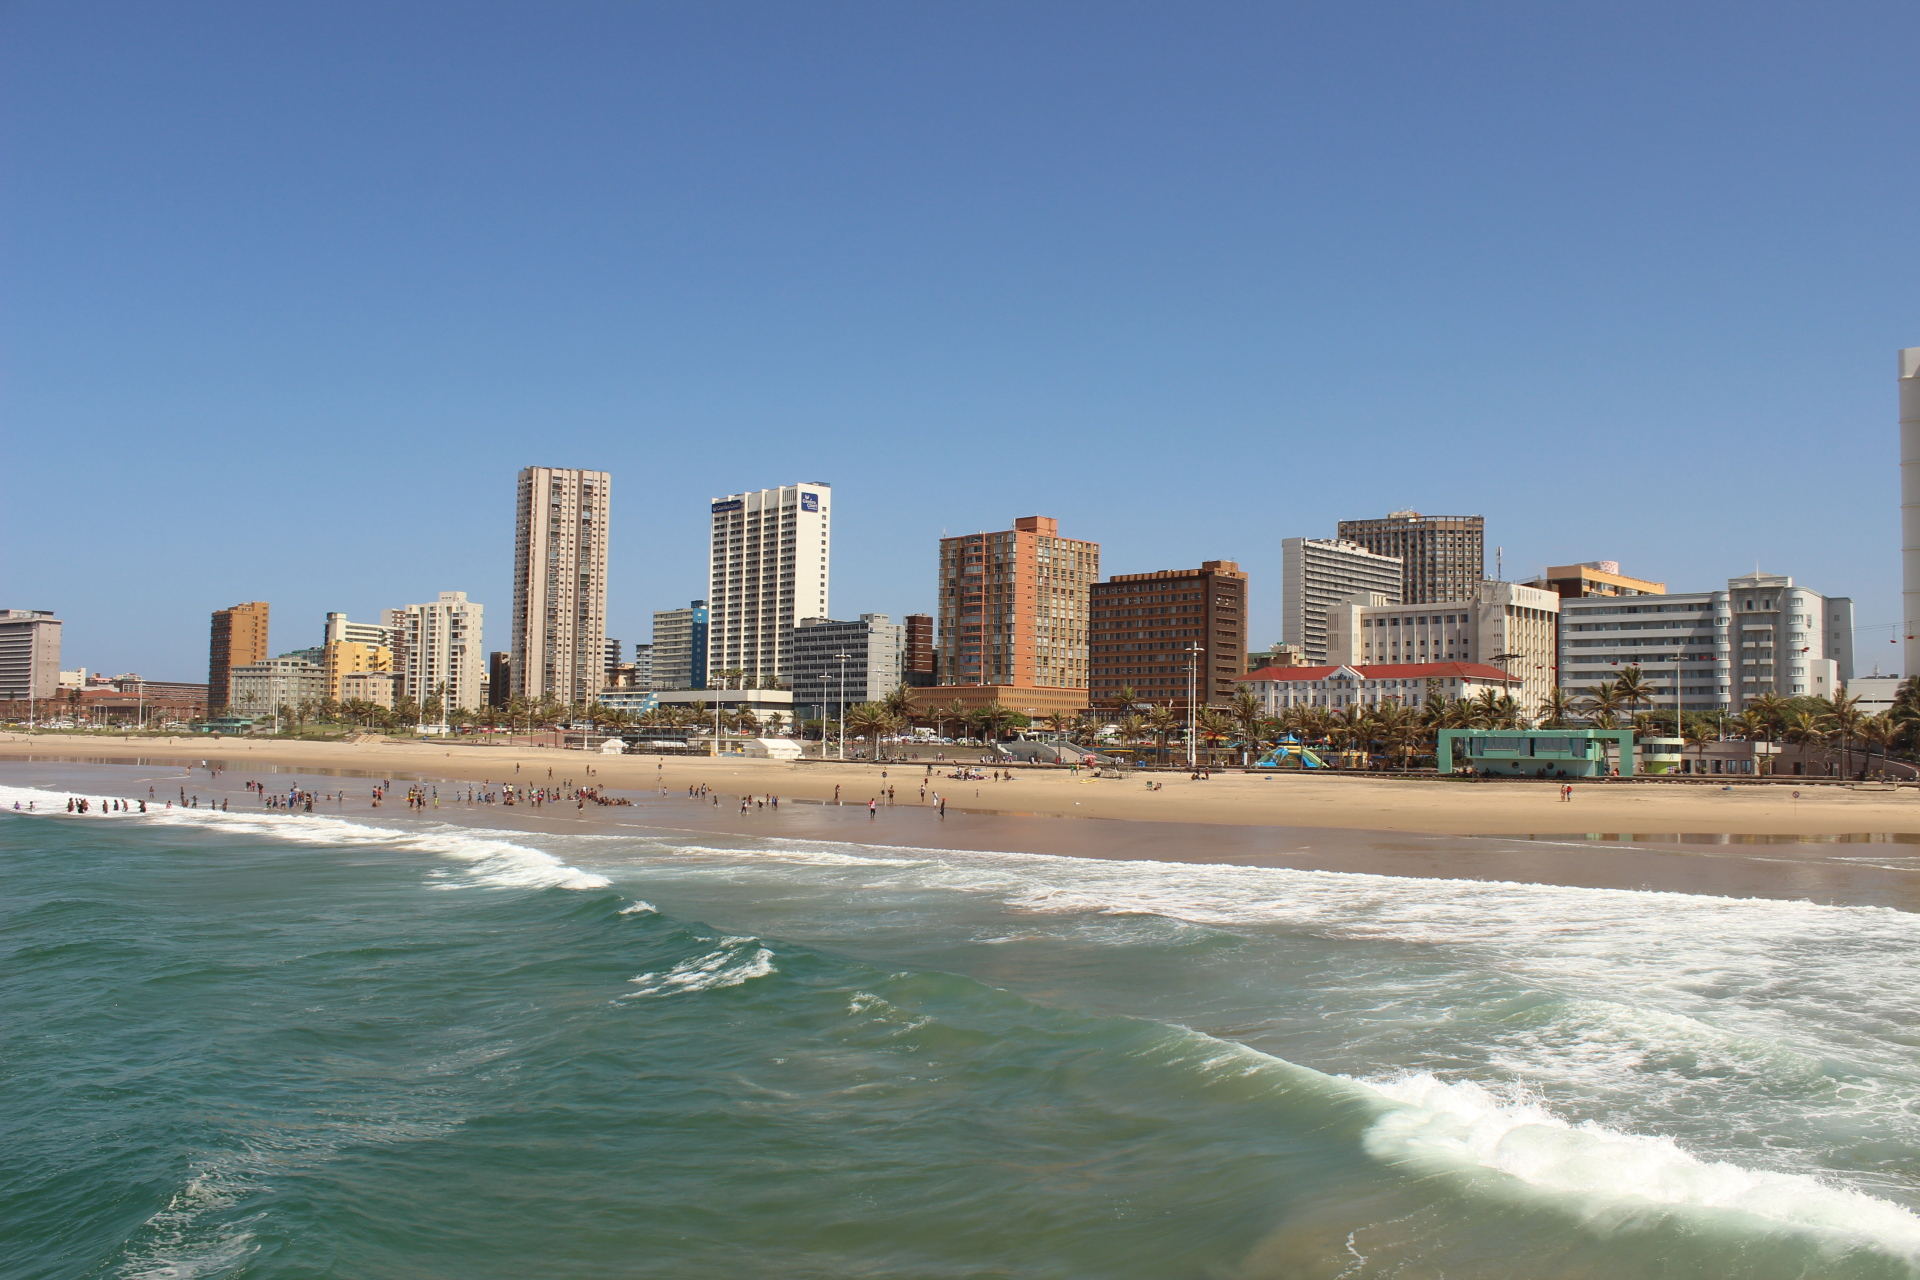 2018 South Africa Trip, Part 3: First Day in Durban